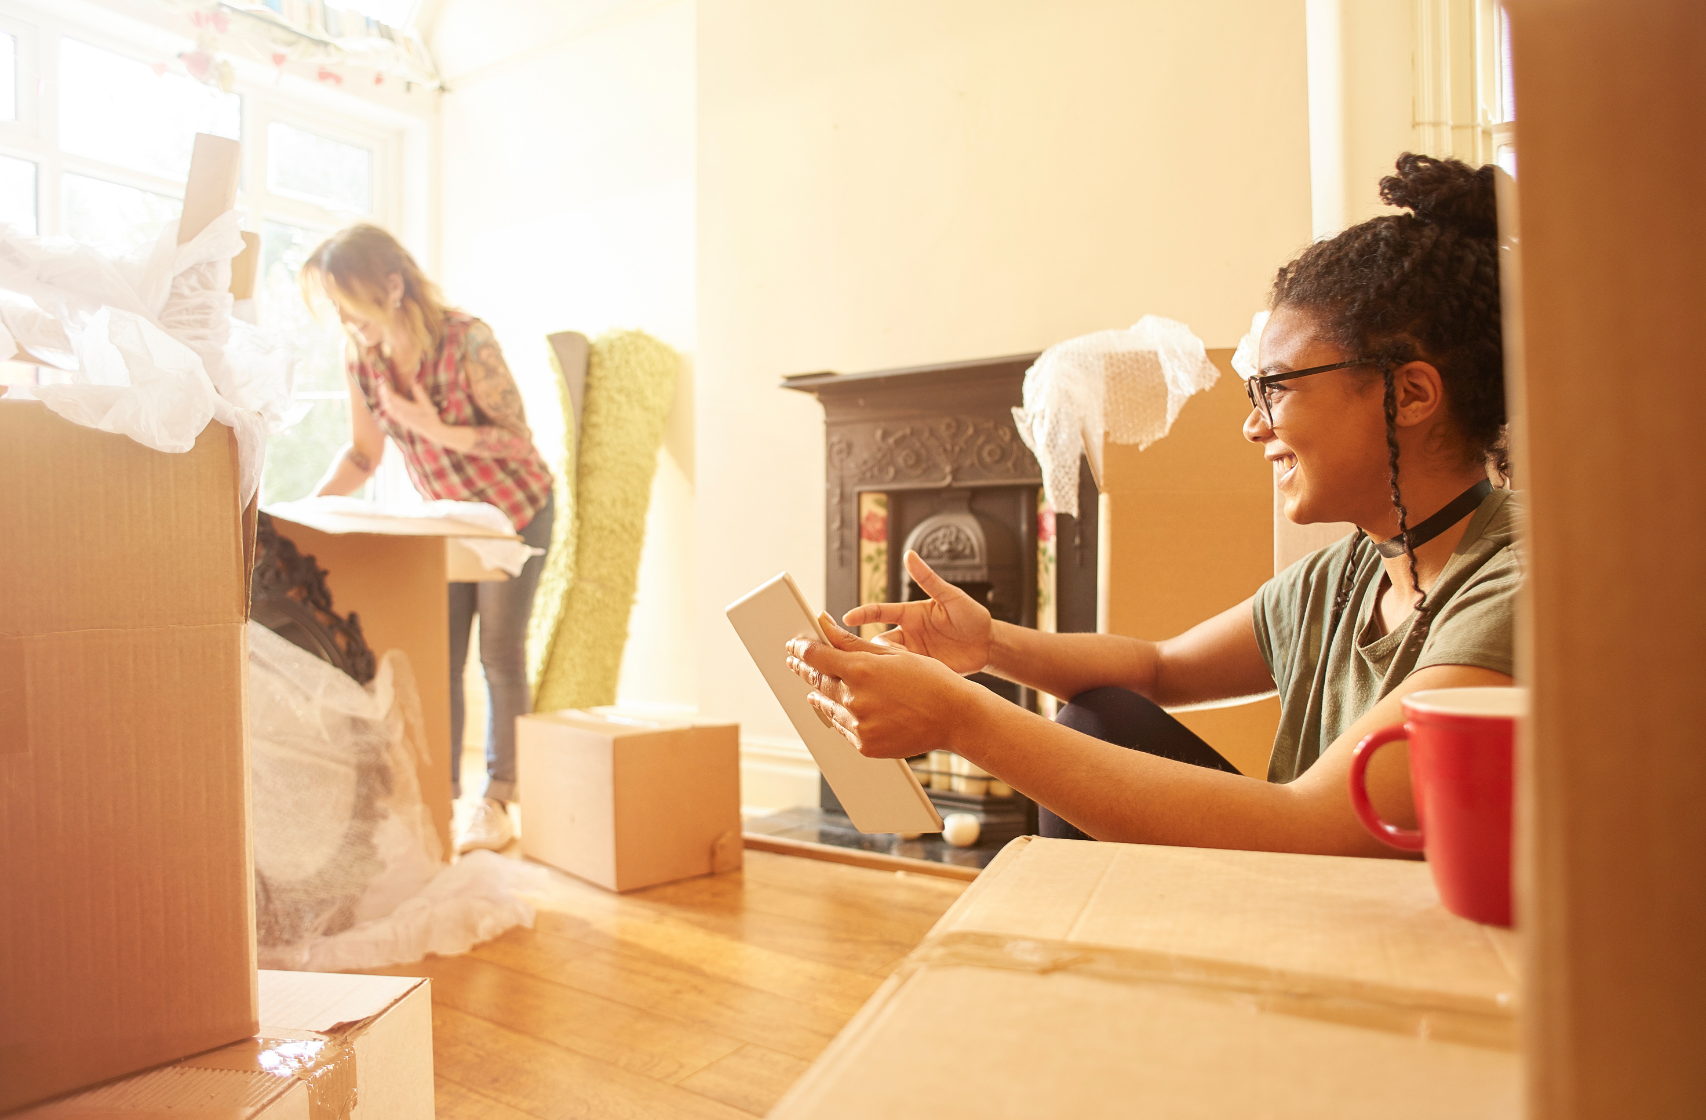 Two young girls unpacking cardboard boxes after buying their first home.